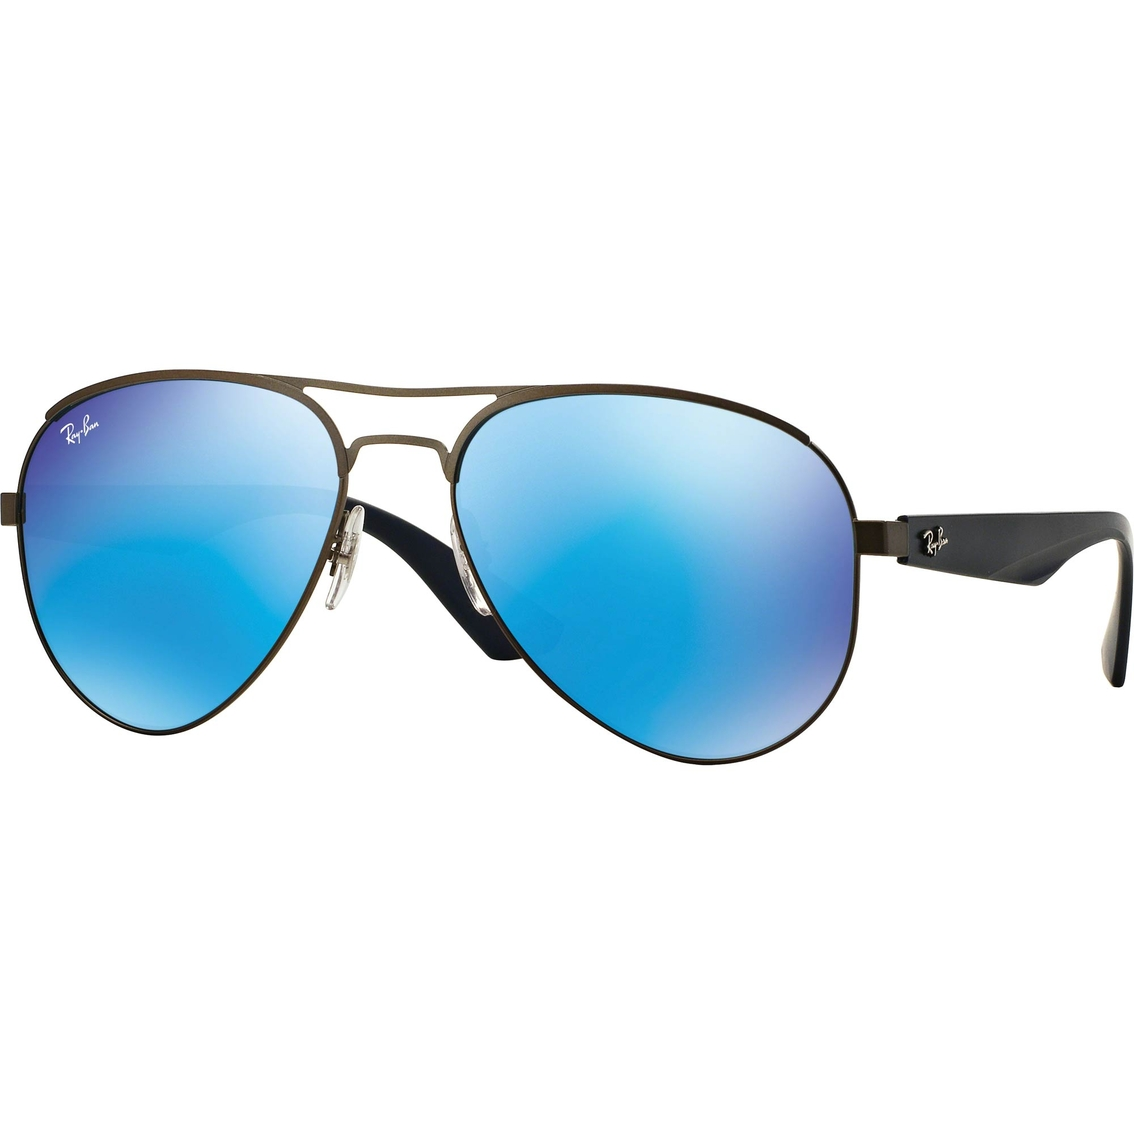 Find great deals on eBay for baby aviator sunglasses. Shop with confidence.